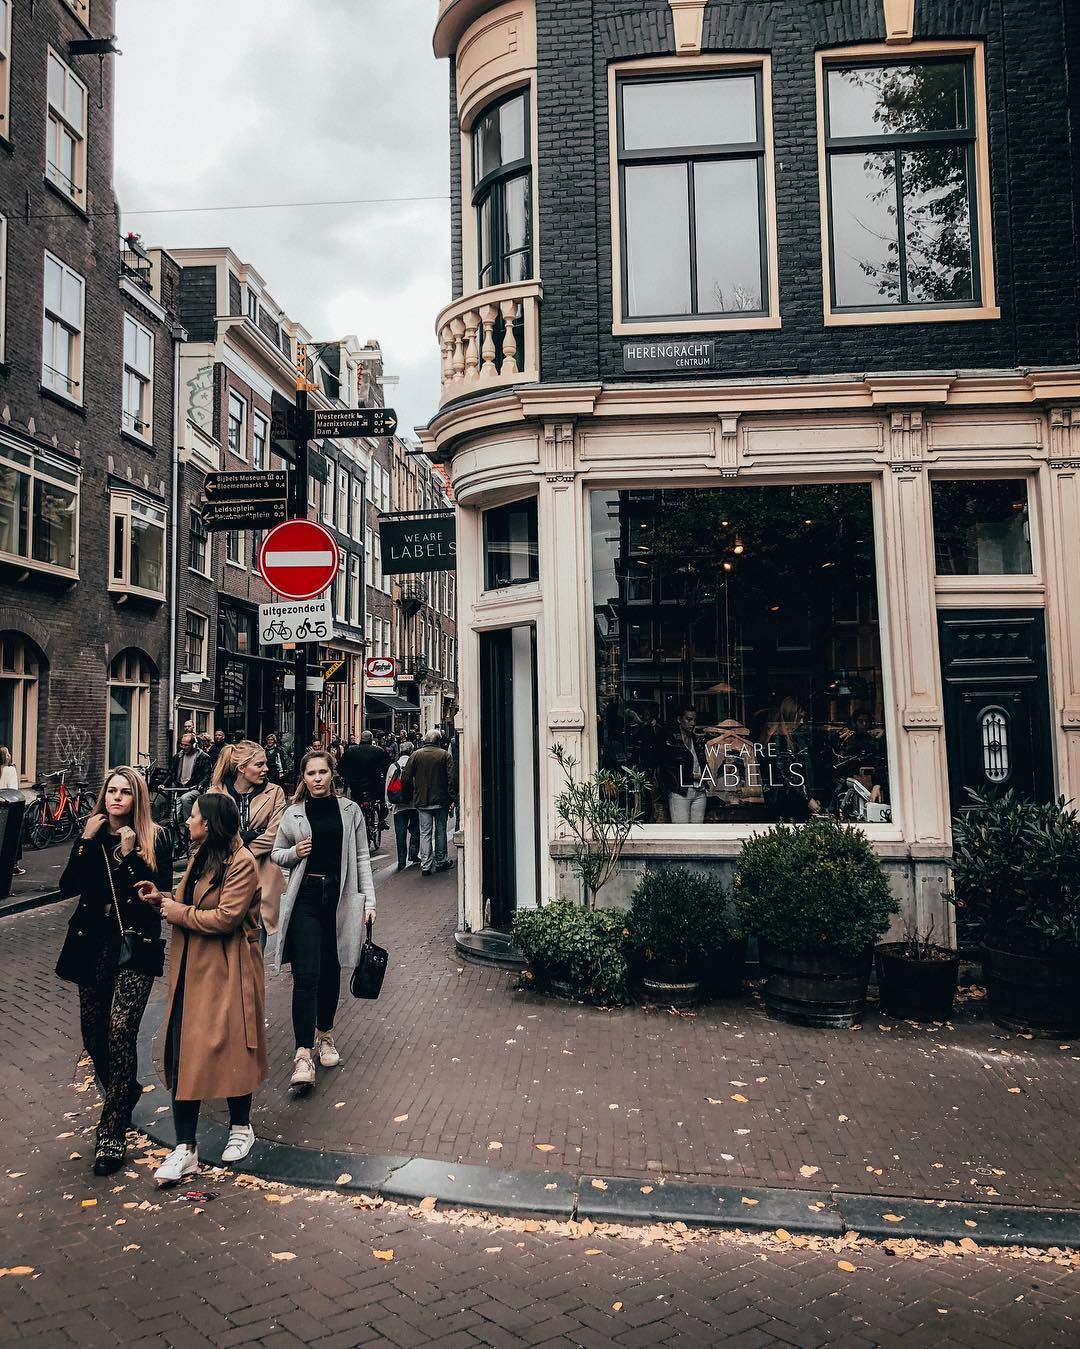 13 Things You Must Do In Amsterdam. The Nine Streets in Amsterdam. Whether it's your first time in the city or you have been to Amsterdam numerous times, you truly haven't experienced the city until you do these activities. #Amsterdam #Travel #Traveler #Netherlands